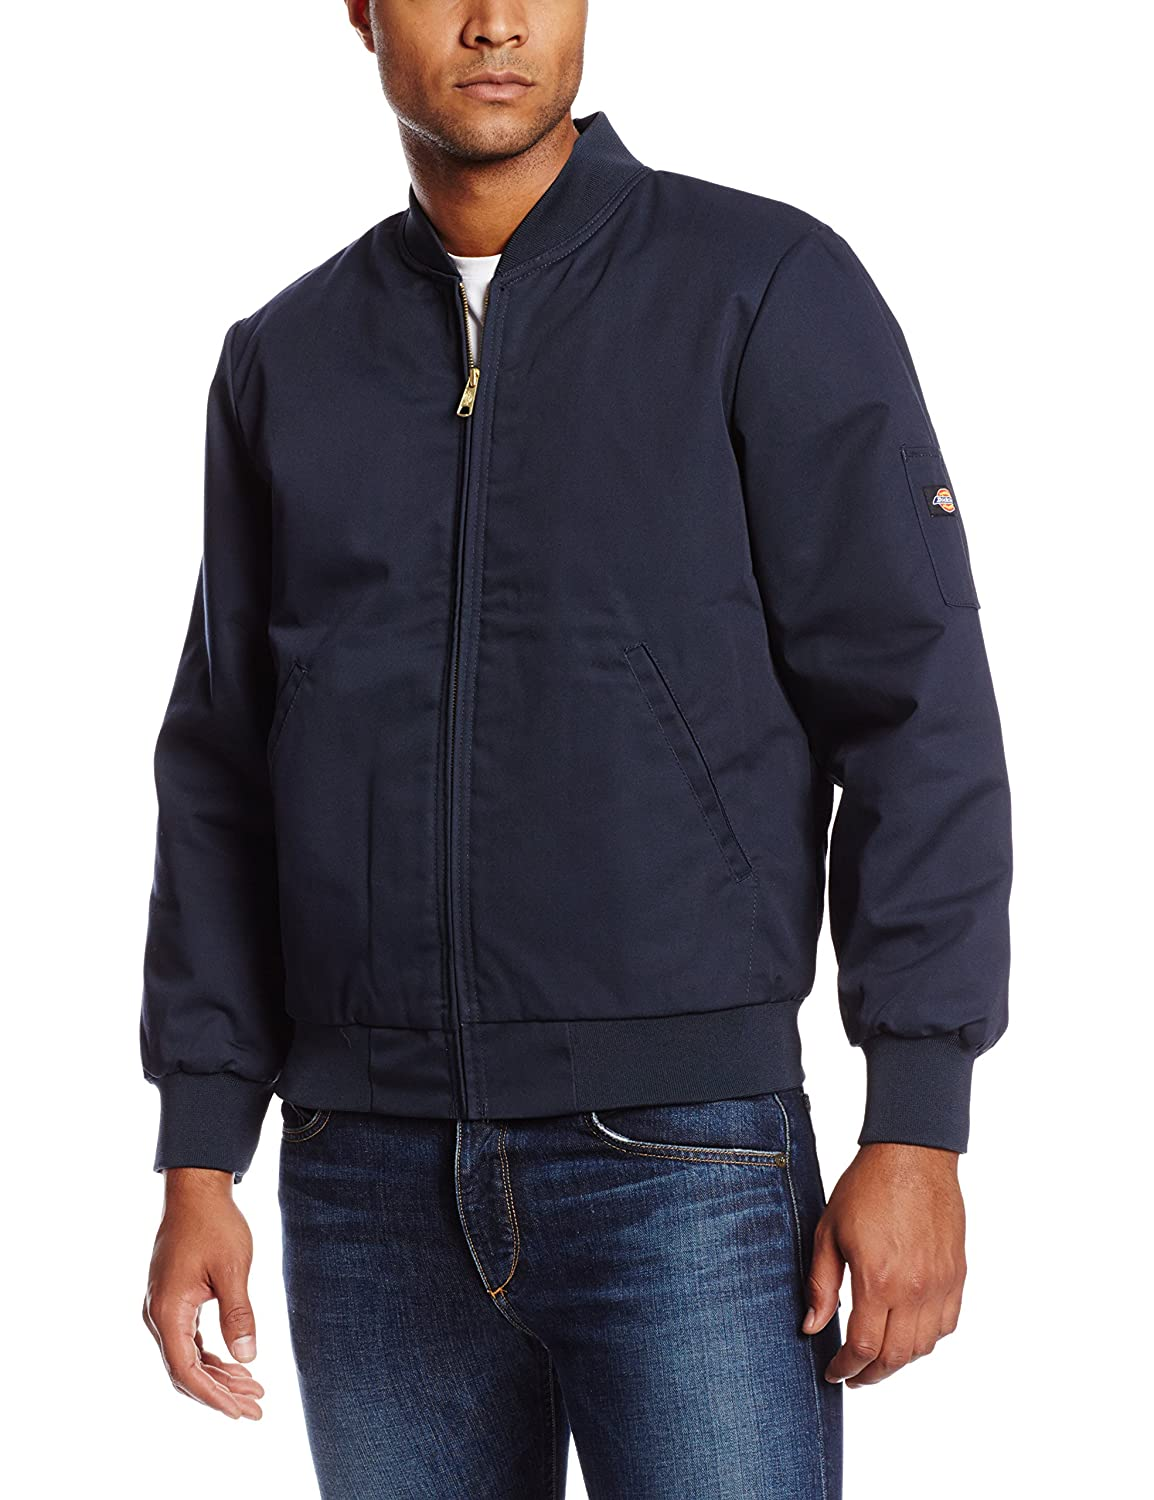 Dickies Occupational Workwear JTC2DN 3XL Polyester/Cotton Insulated Team Jacket with Slash Front Pockets, 3X-Large, Dark Navy